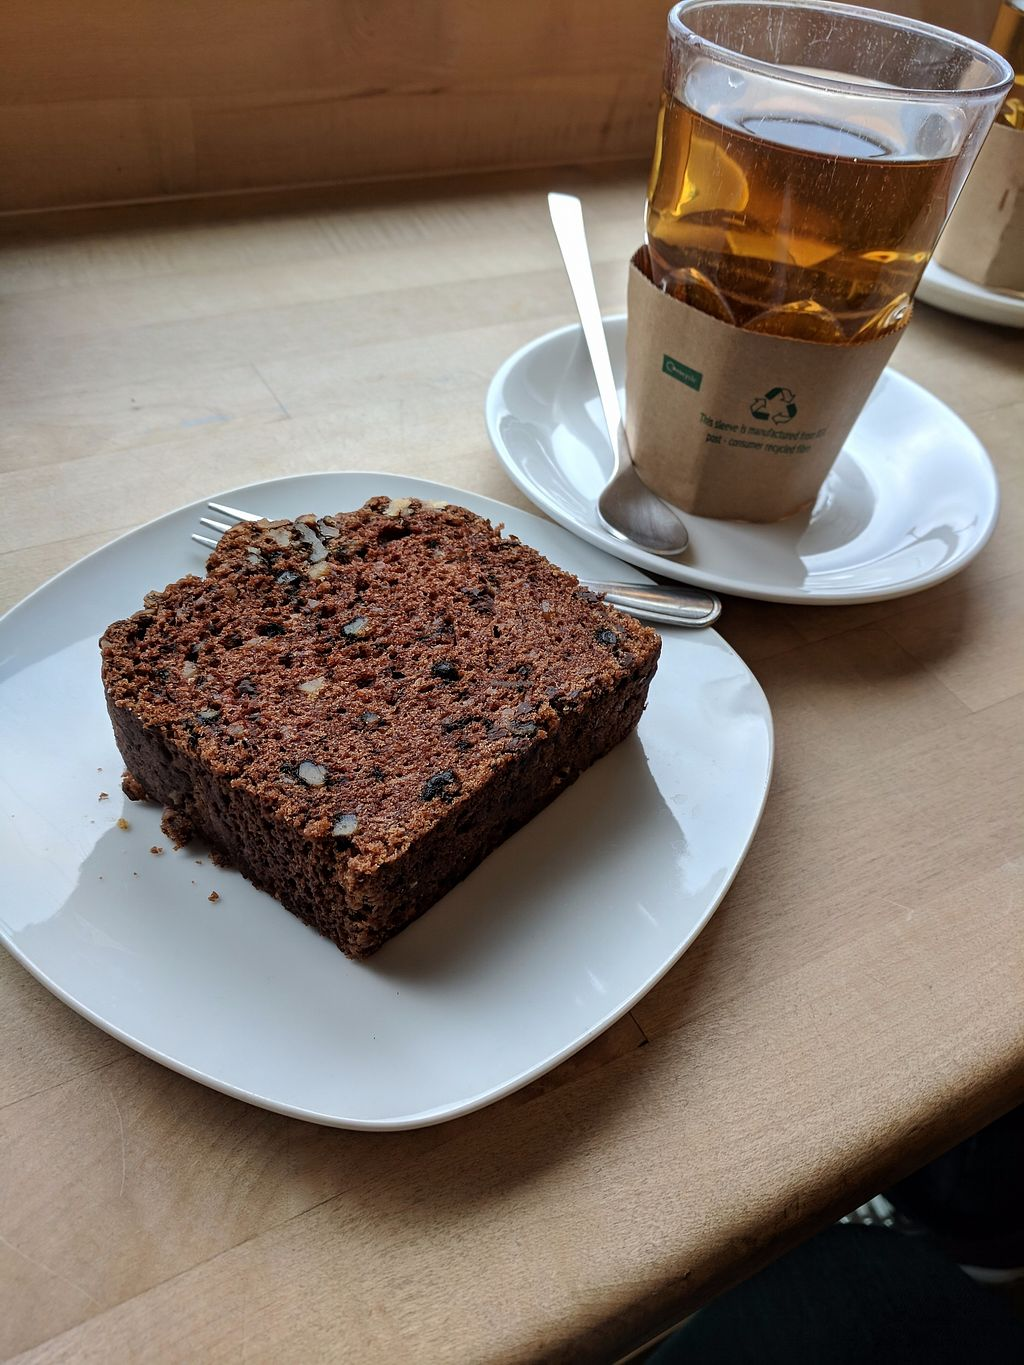 "Photo of Veganz - Berlin Friedrichshain  by <a href=""/members/profile/Pupnik"">Pupnik</a> <br/>Chocolate loaf <br/> November 16, 2017  - <a href='/contact/abuse/image/37940/326279'>Report</a>"